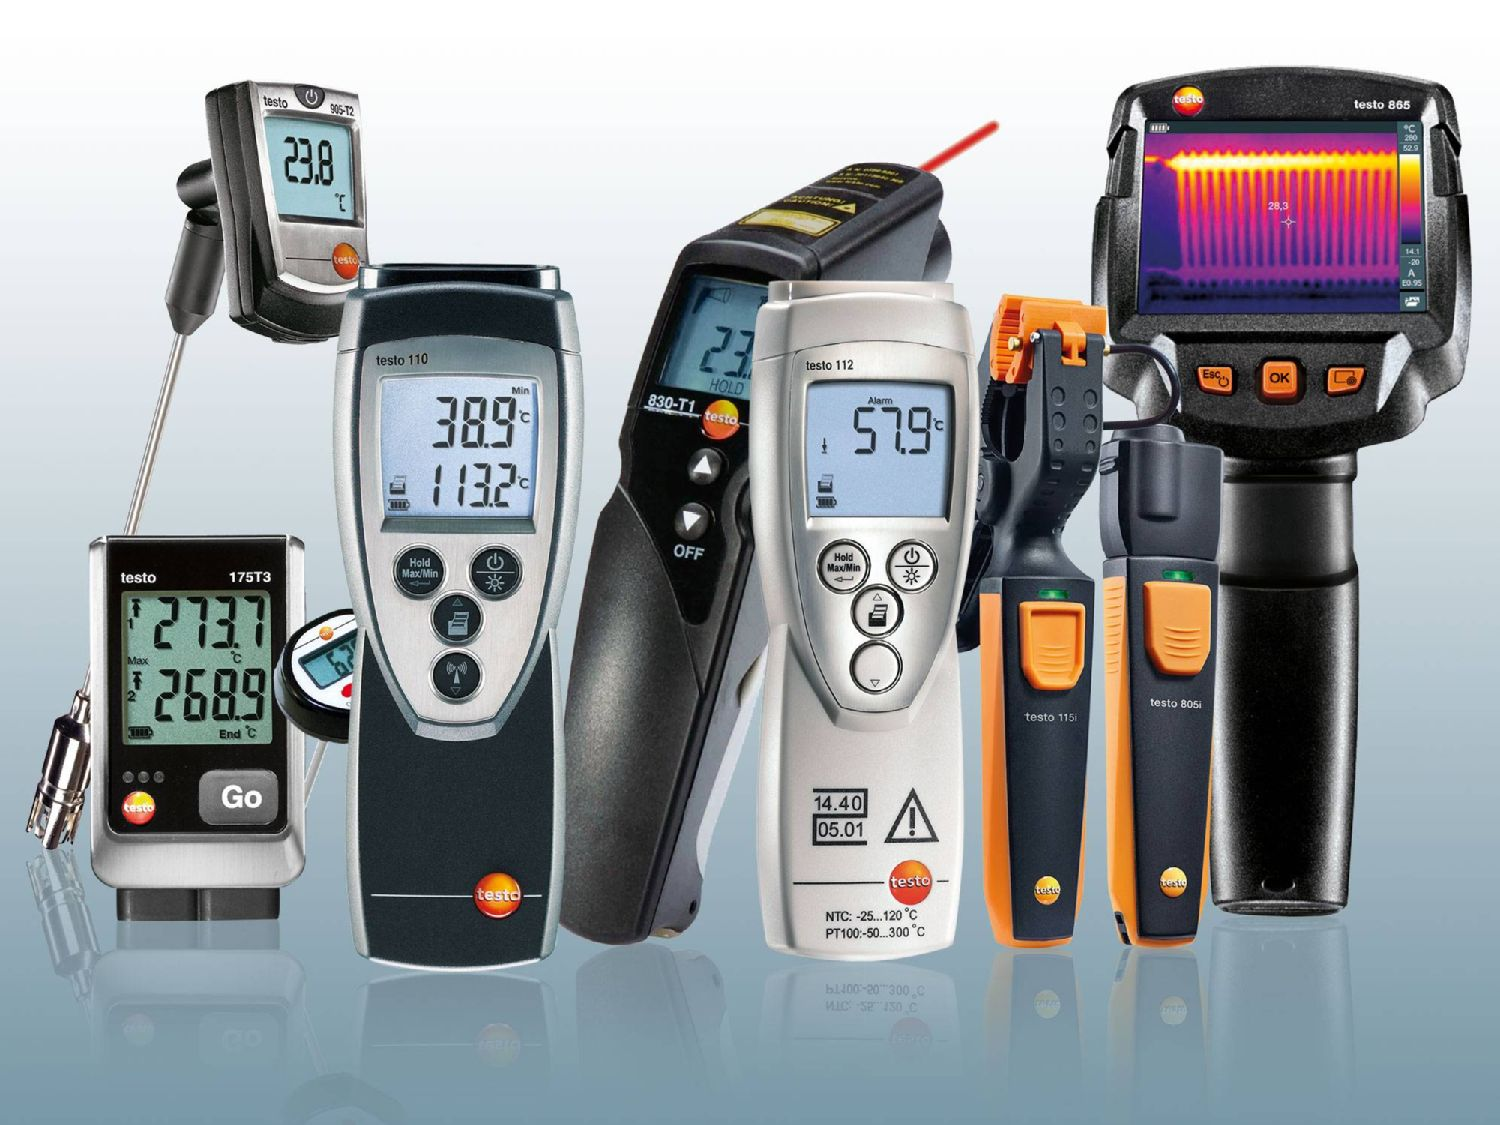 testo-400-Web-Images-Surface-Temperature-3-2000x1500px.jpg